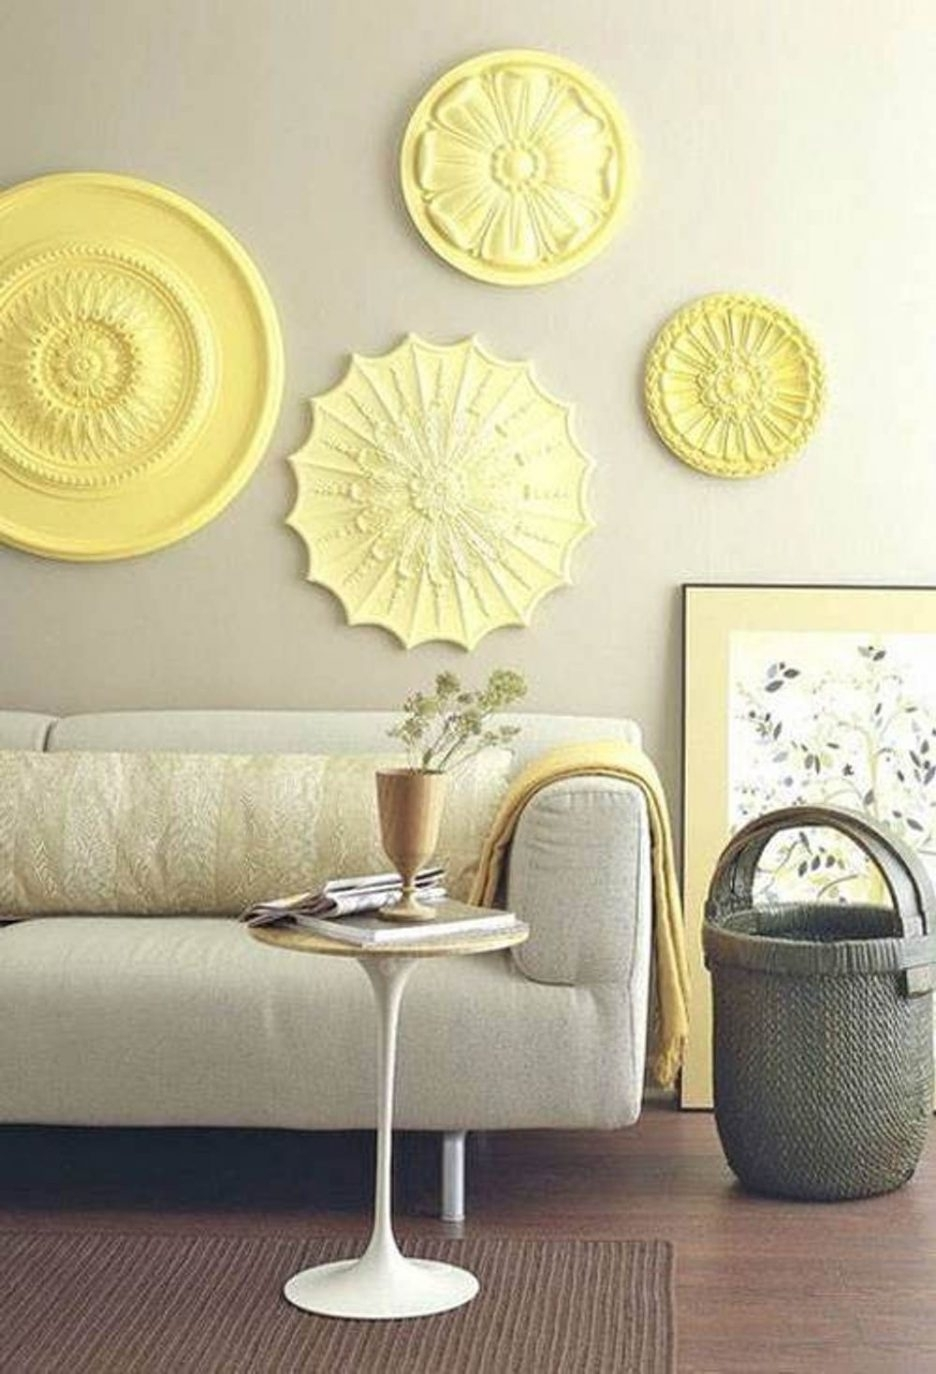 Living Room : Wonderful Wall Art Ideas For Living Room With Yellow With Recent Large Round Wall Art (View 7 of 15)